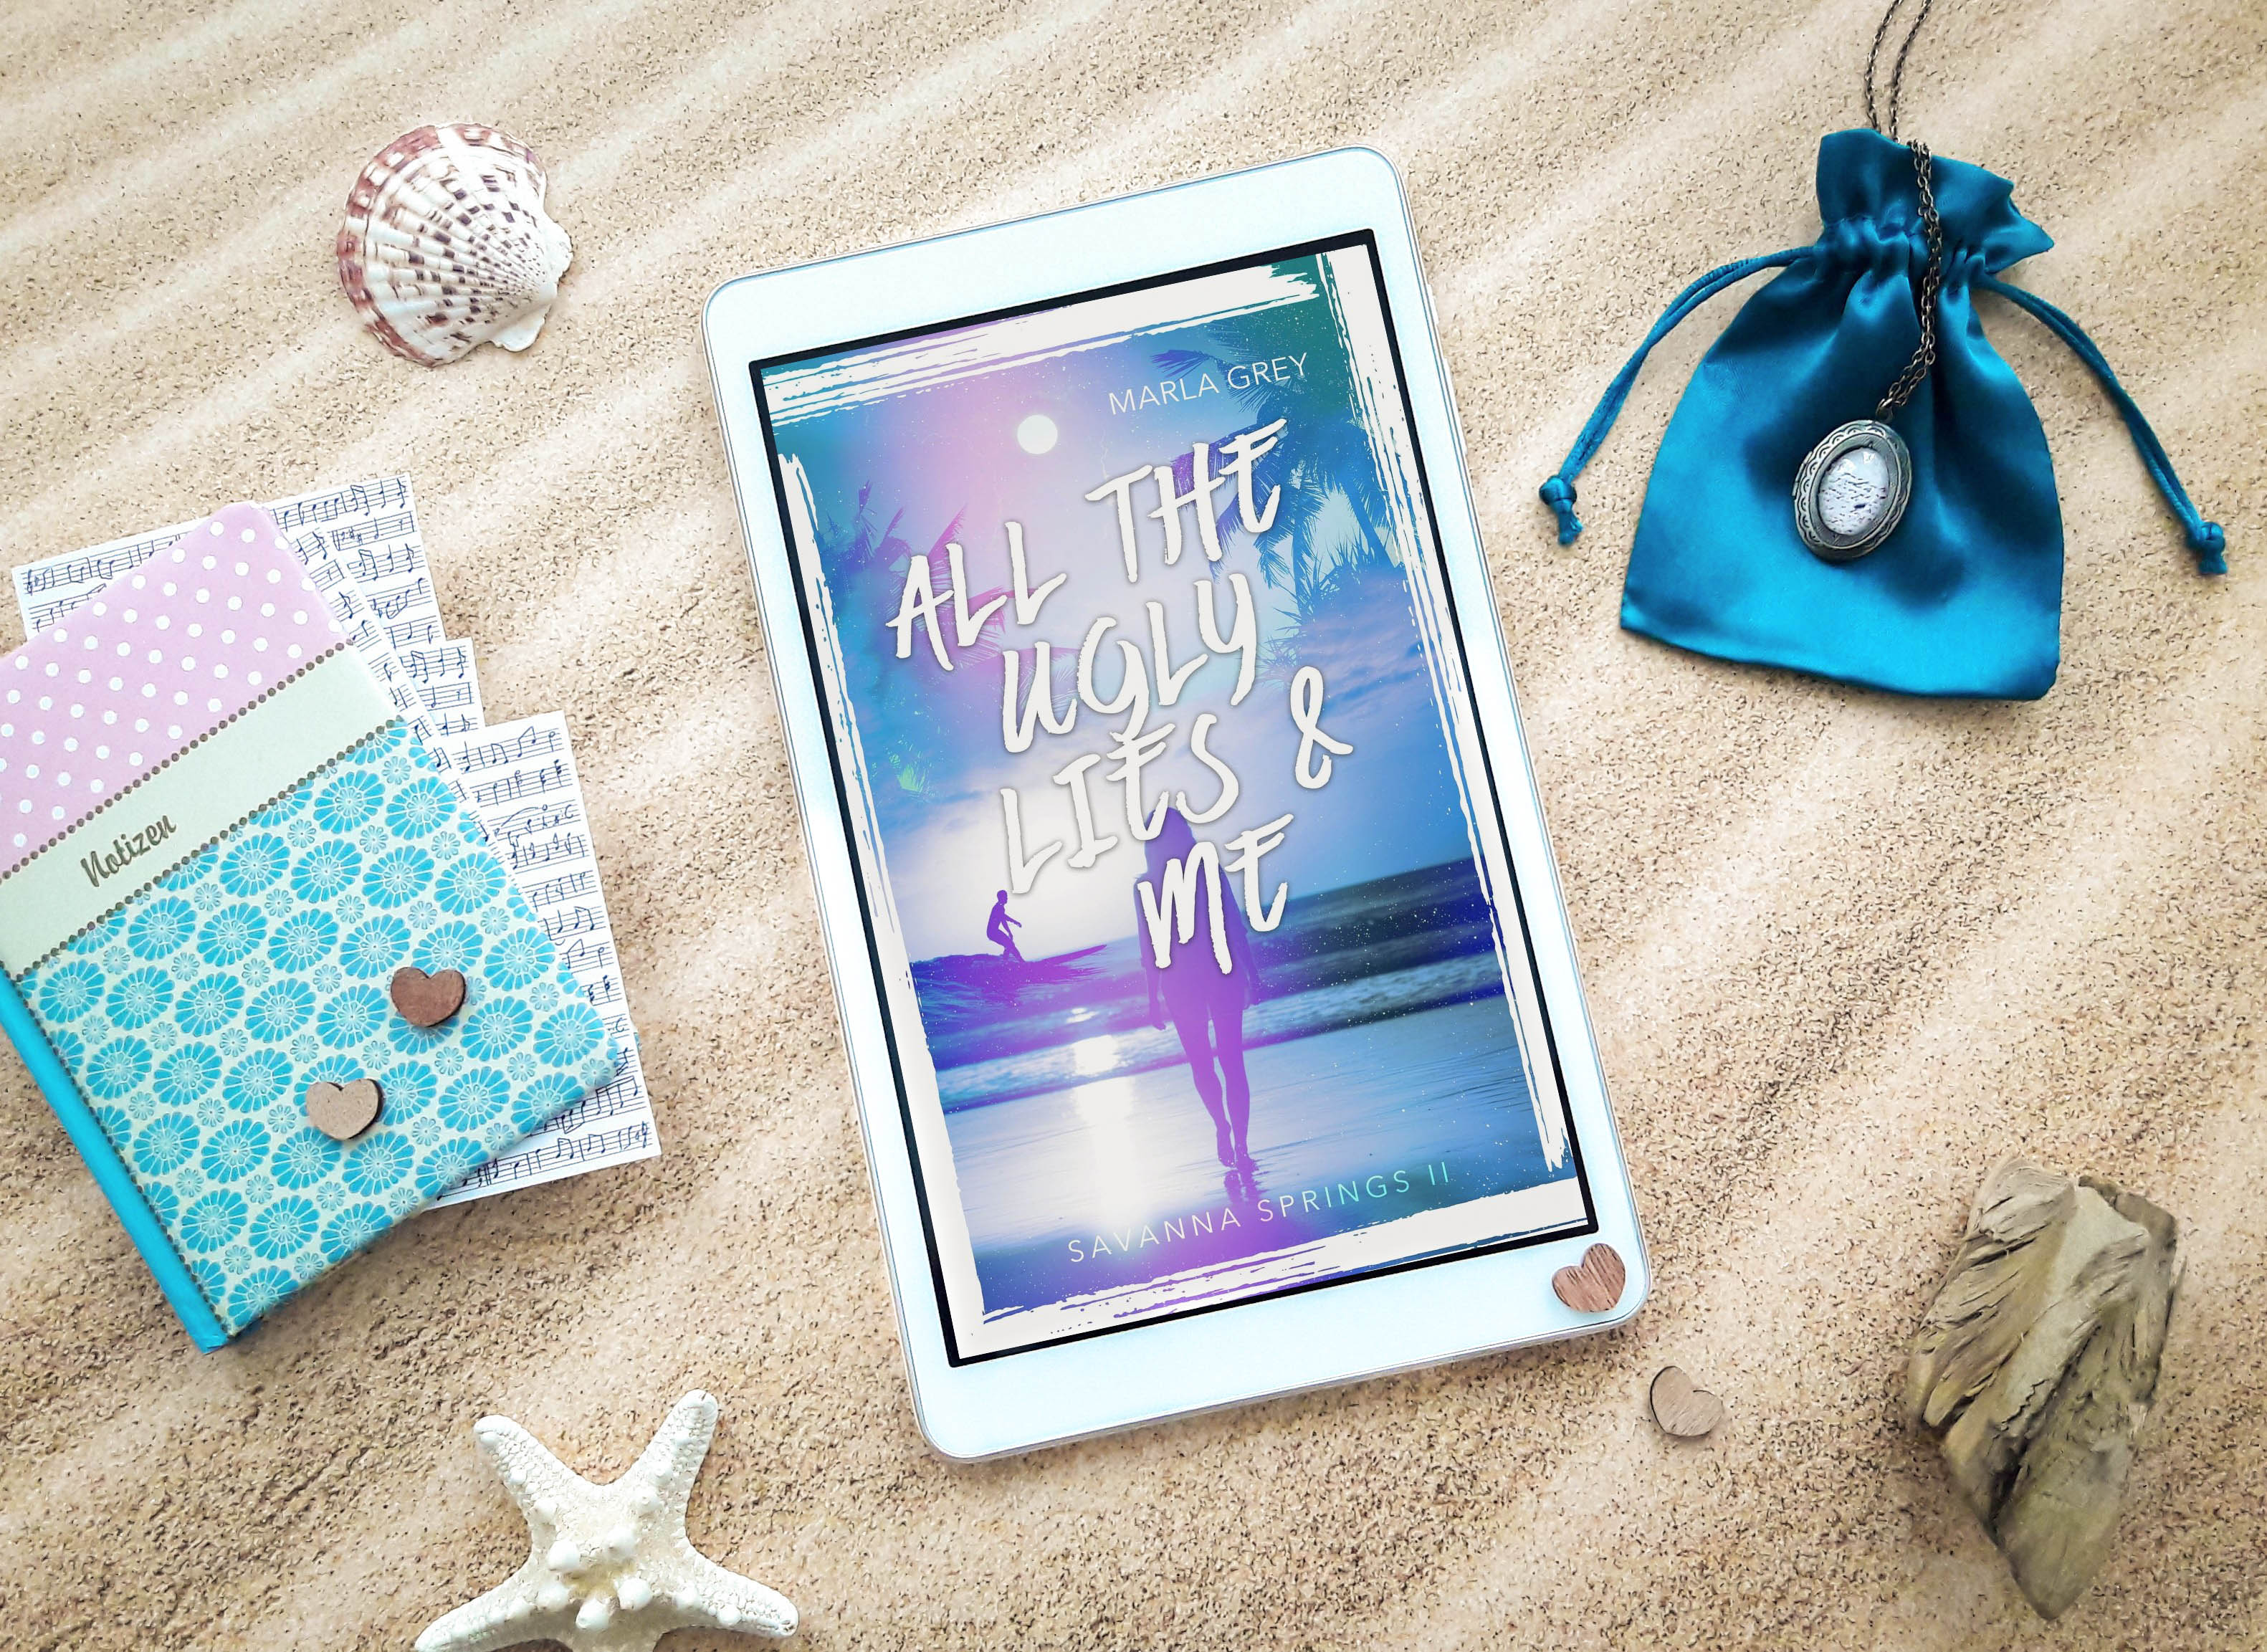 All the ugly lies and me: Savanna Springs 2 – Marla Grey graphic